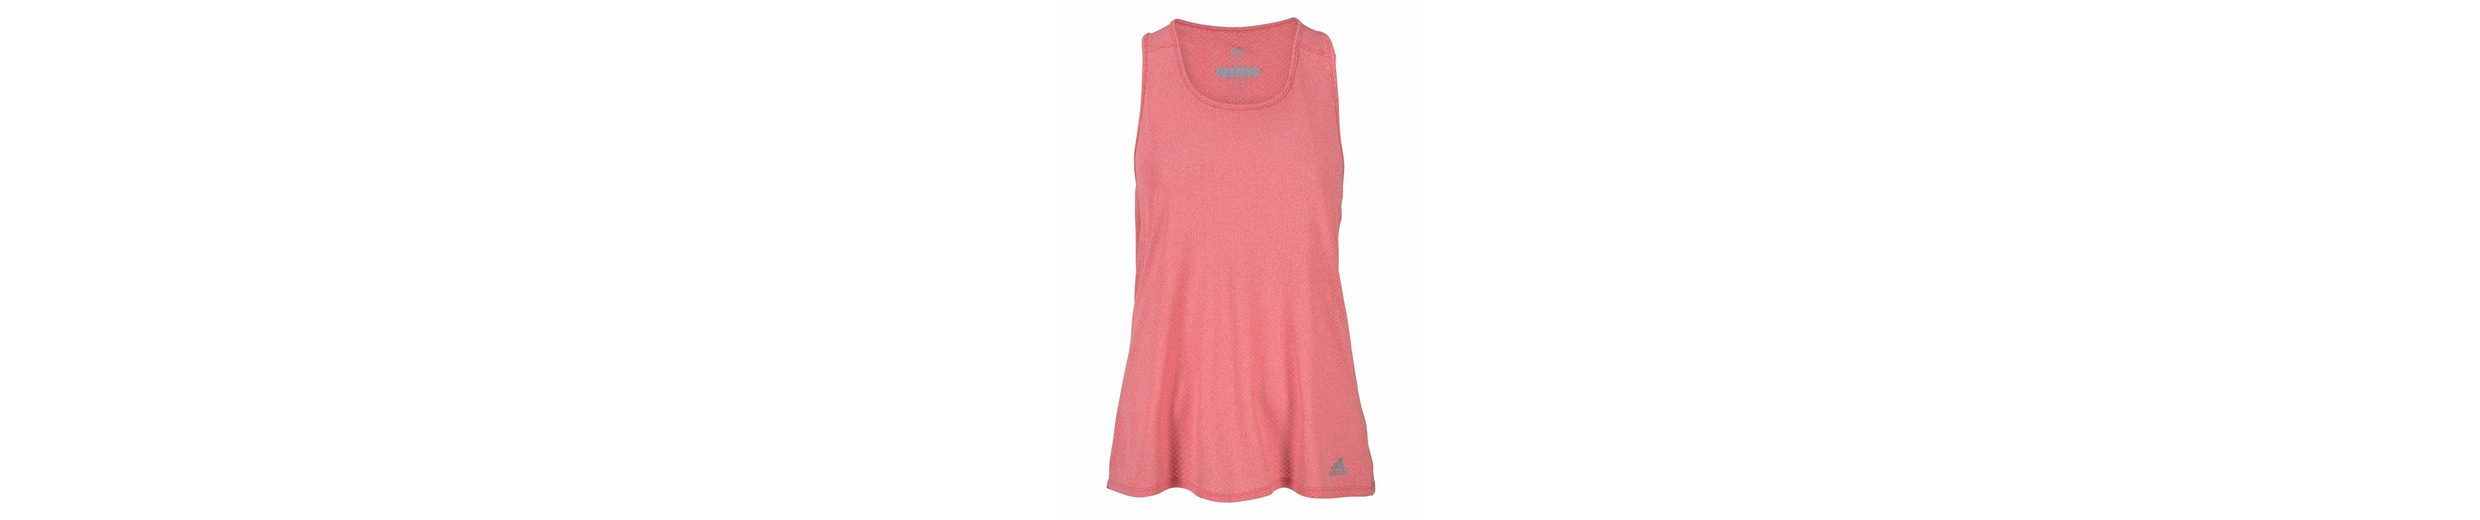 adidas Performance Tanktop RESPONSE LIGHT SPEED TANK Billige Browse Rabatt Billig Günstige Online VVJig8in